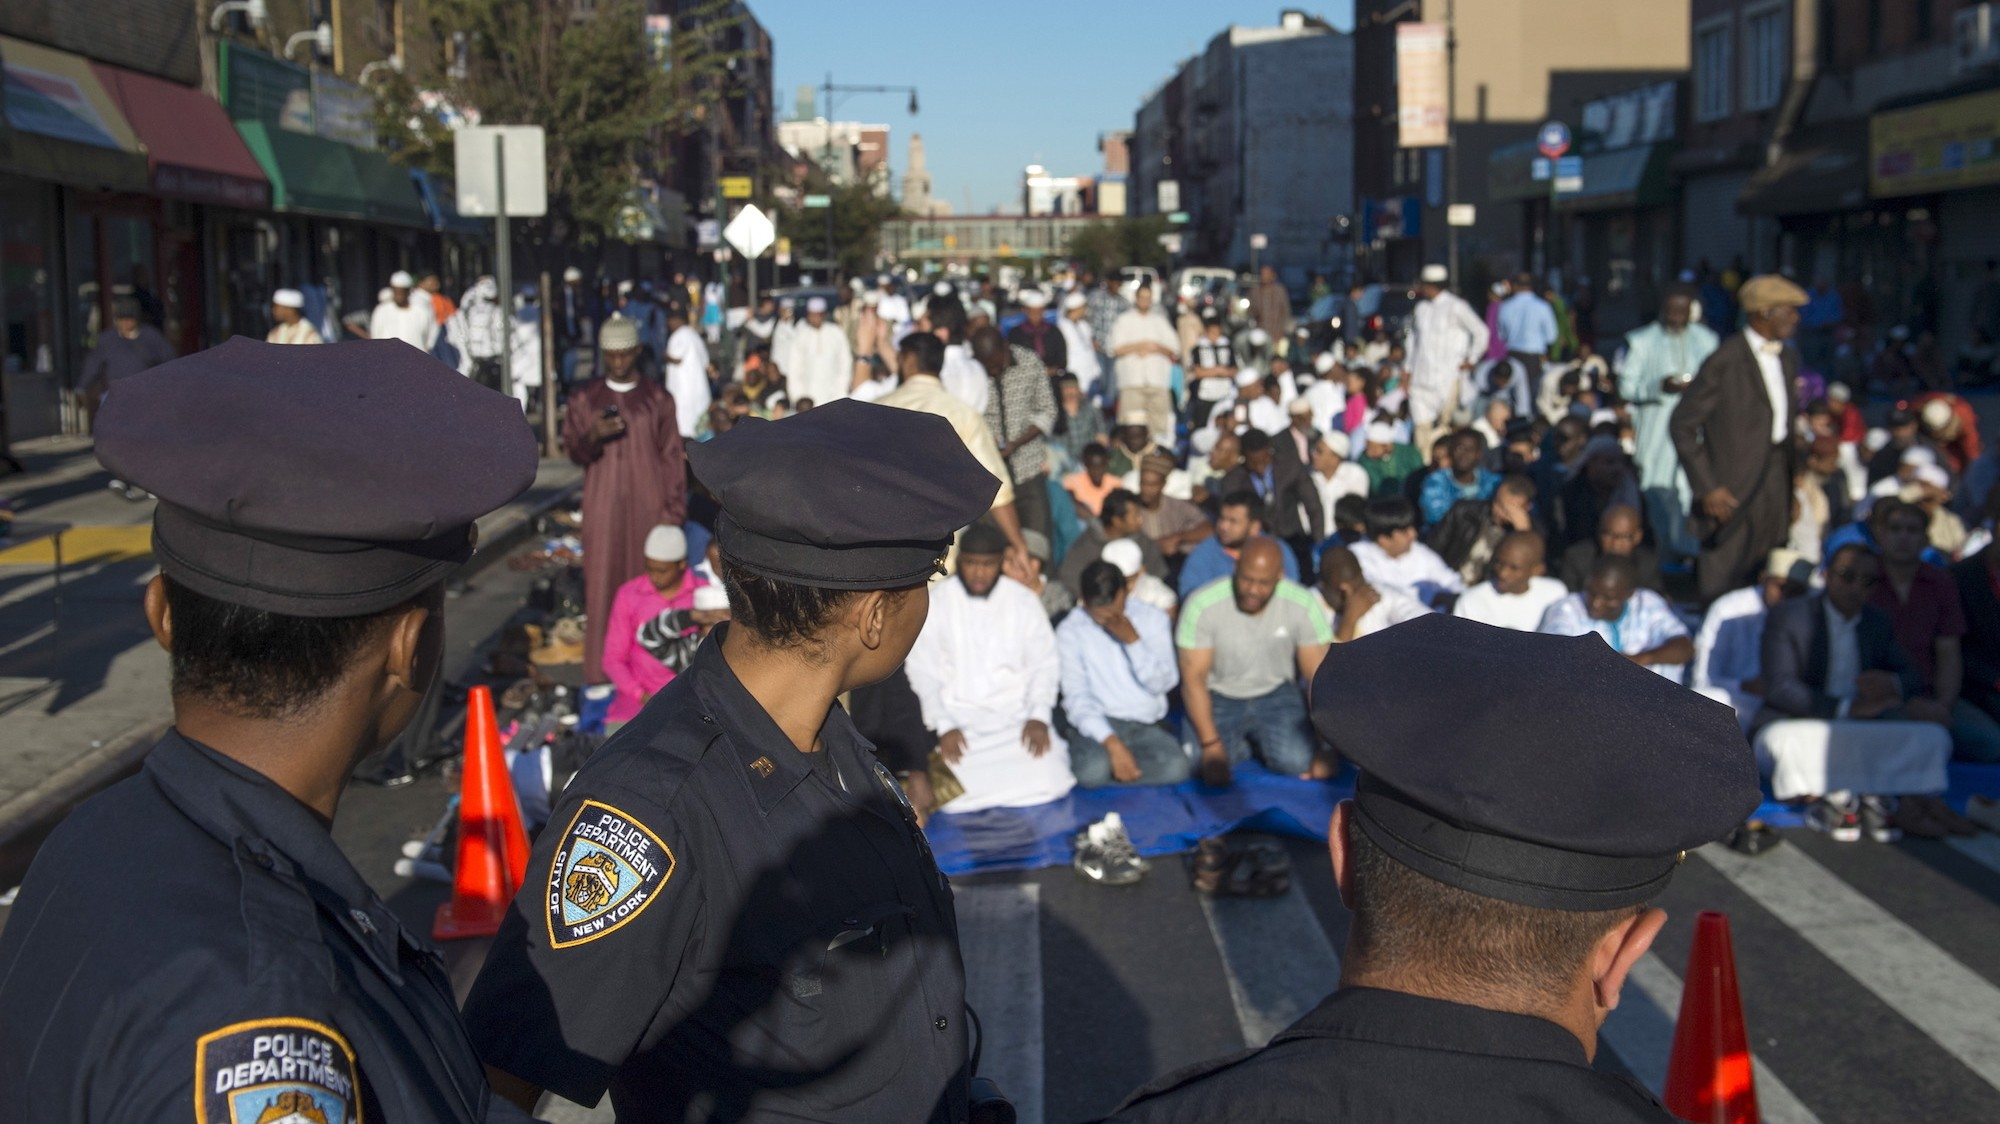 The NYPD broke its own rules when spying on Muslims, inspector general says